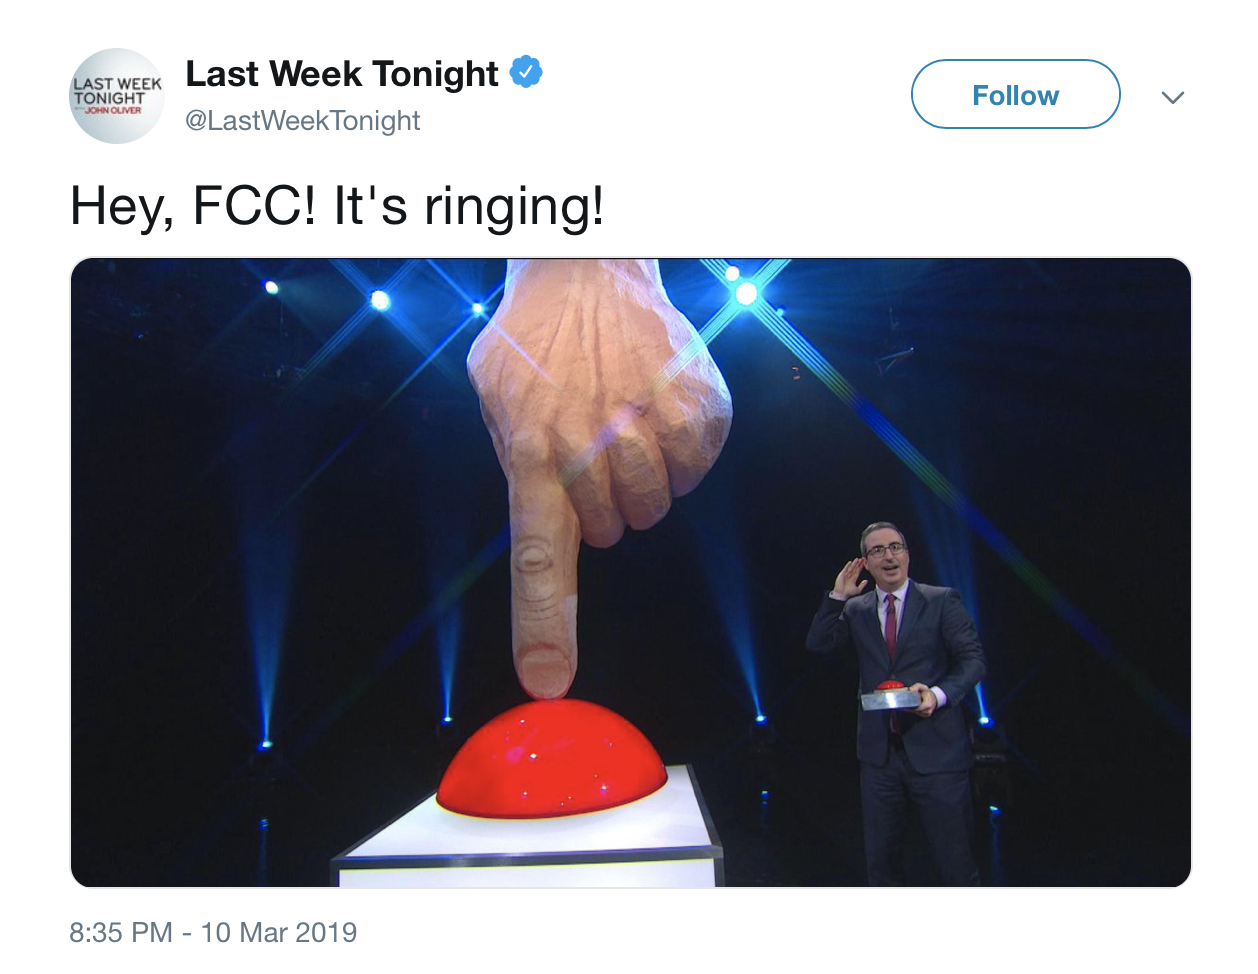 A tweet from Last Week Tonight highlighting its plan to robocall the FCC to protest robocalls